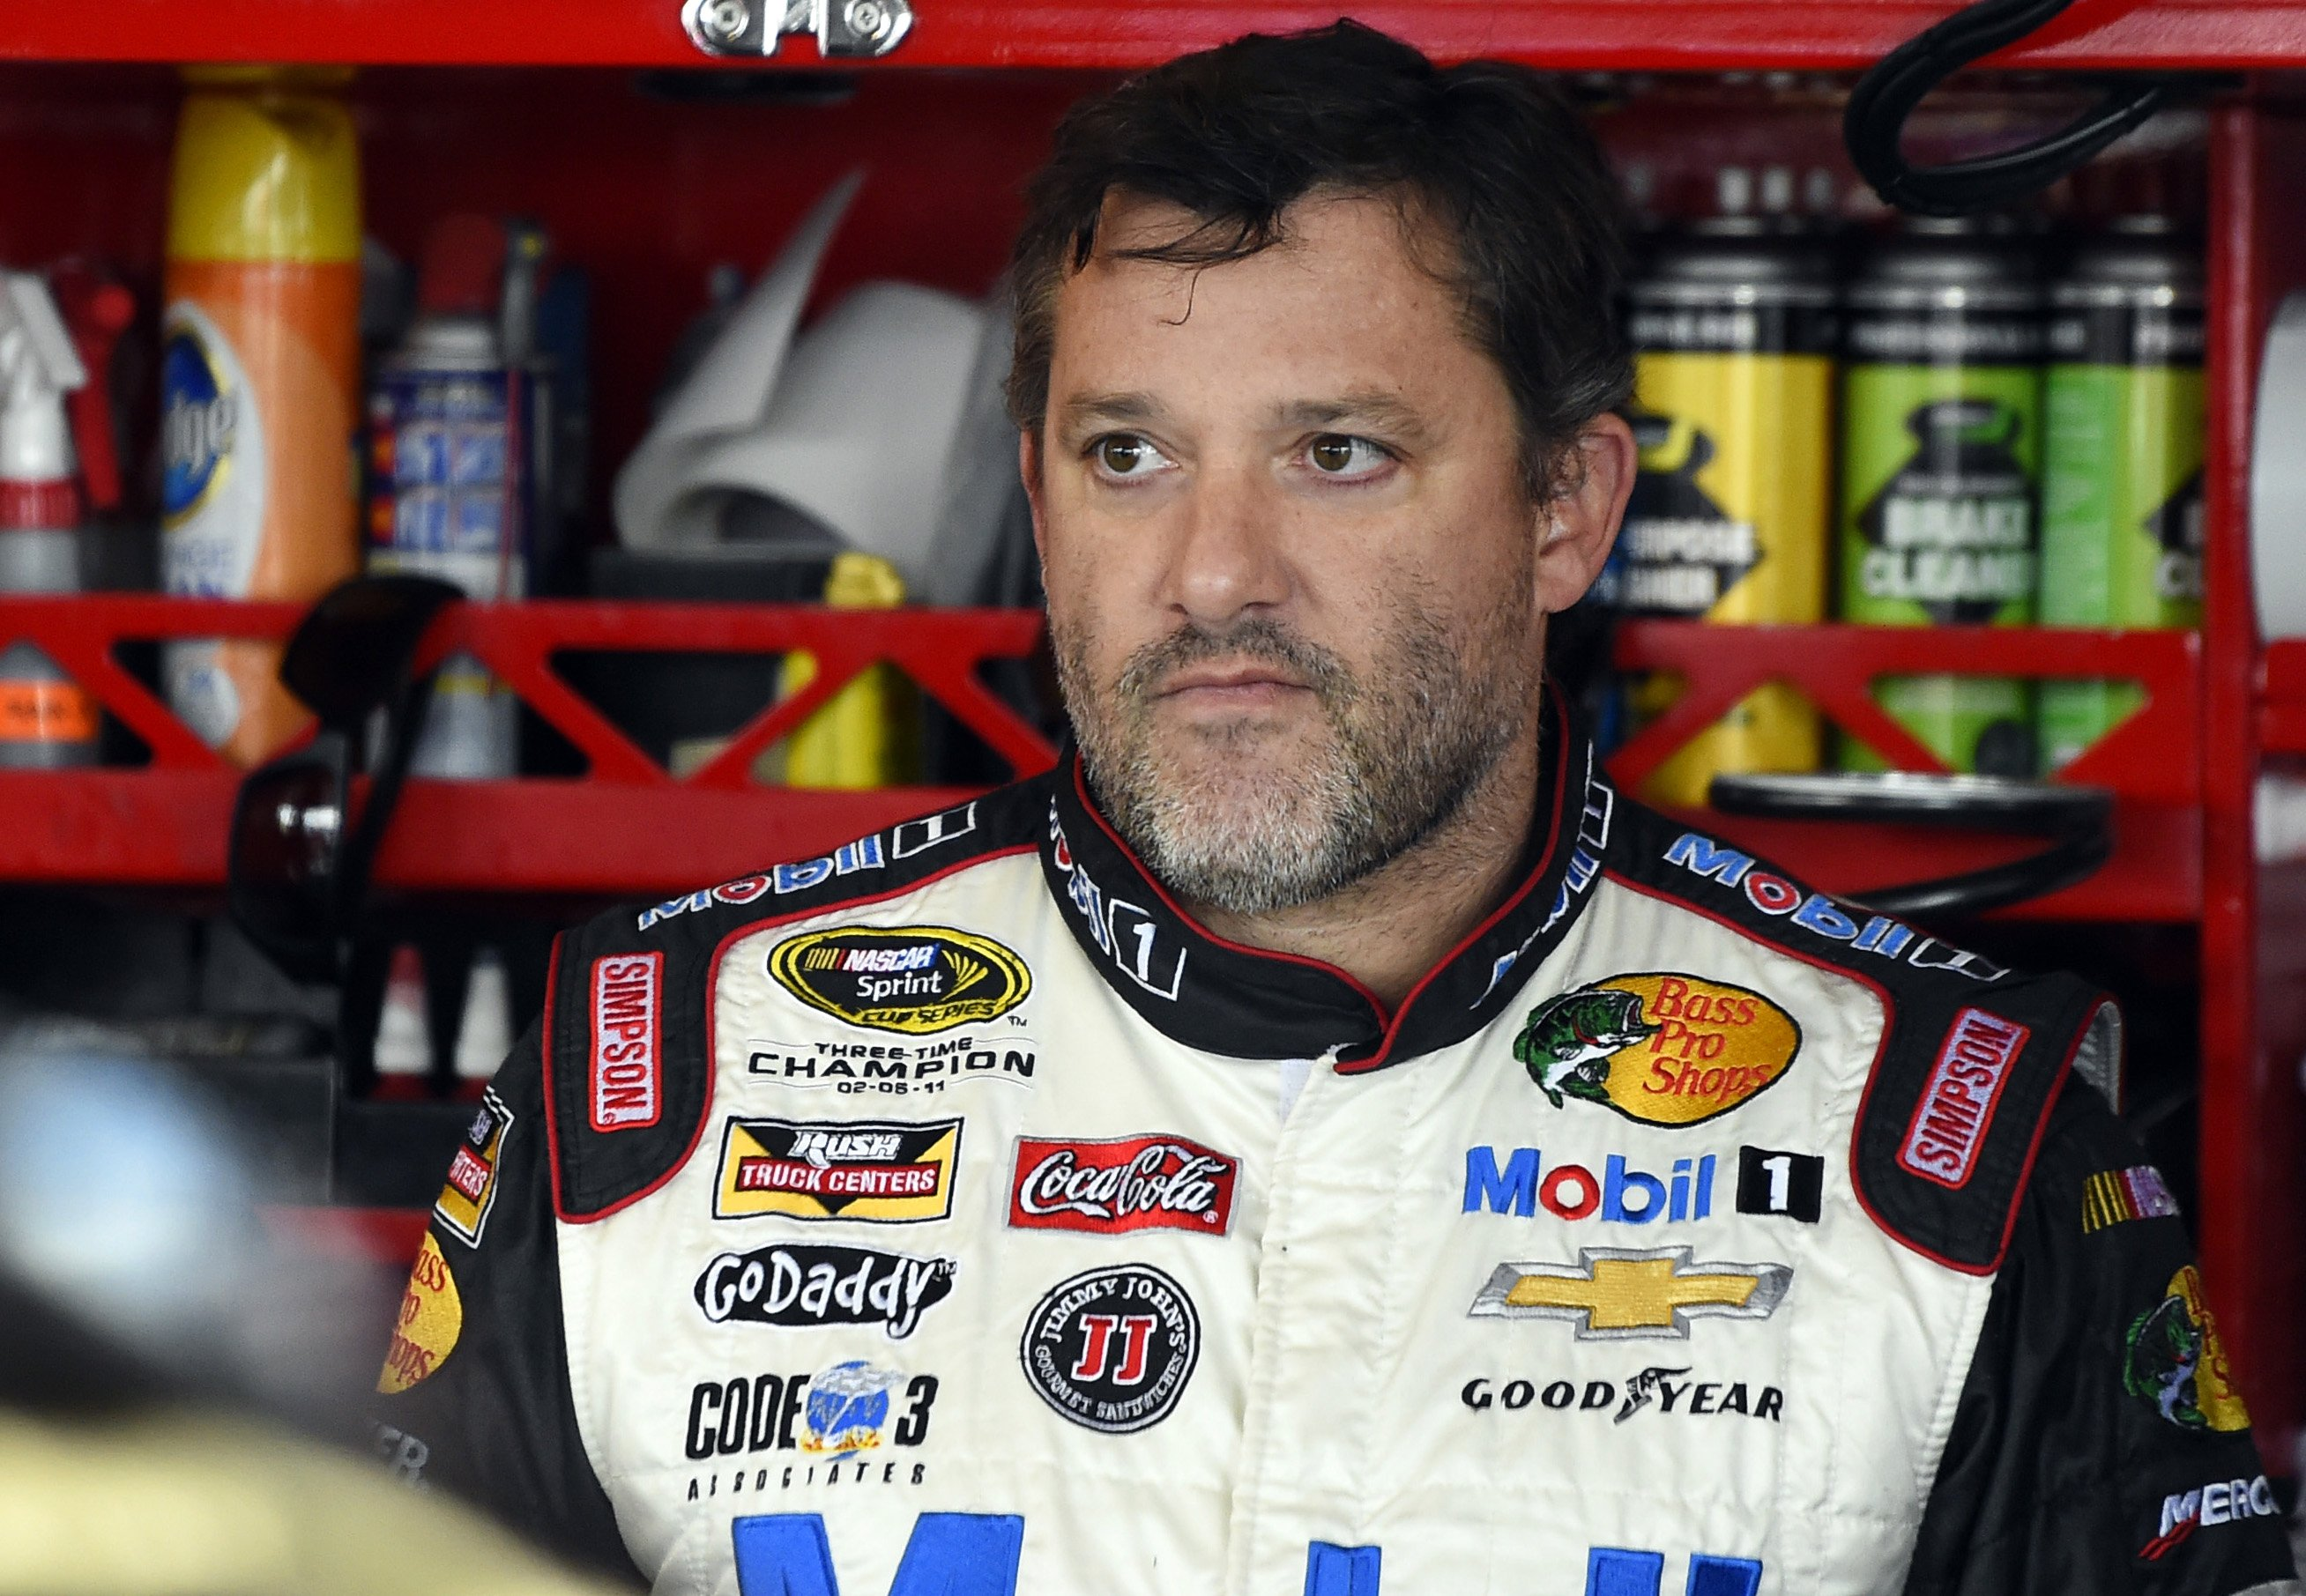 NASCAR driver Tony Stewart (14) looks out from his garage during a practice for the NASCAR Sprint Cup Series auto race at Chicagoland Speedway in Joliet, Ill. on Sept. 13, 2014.